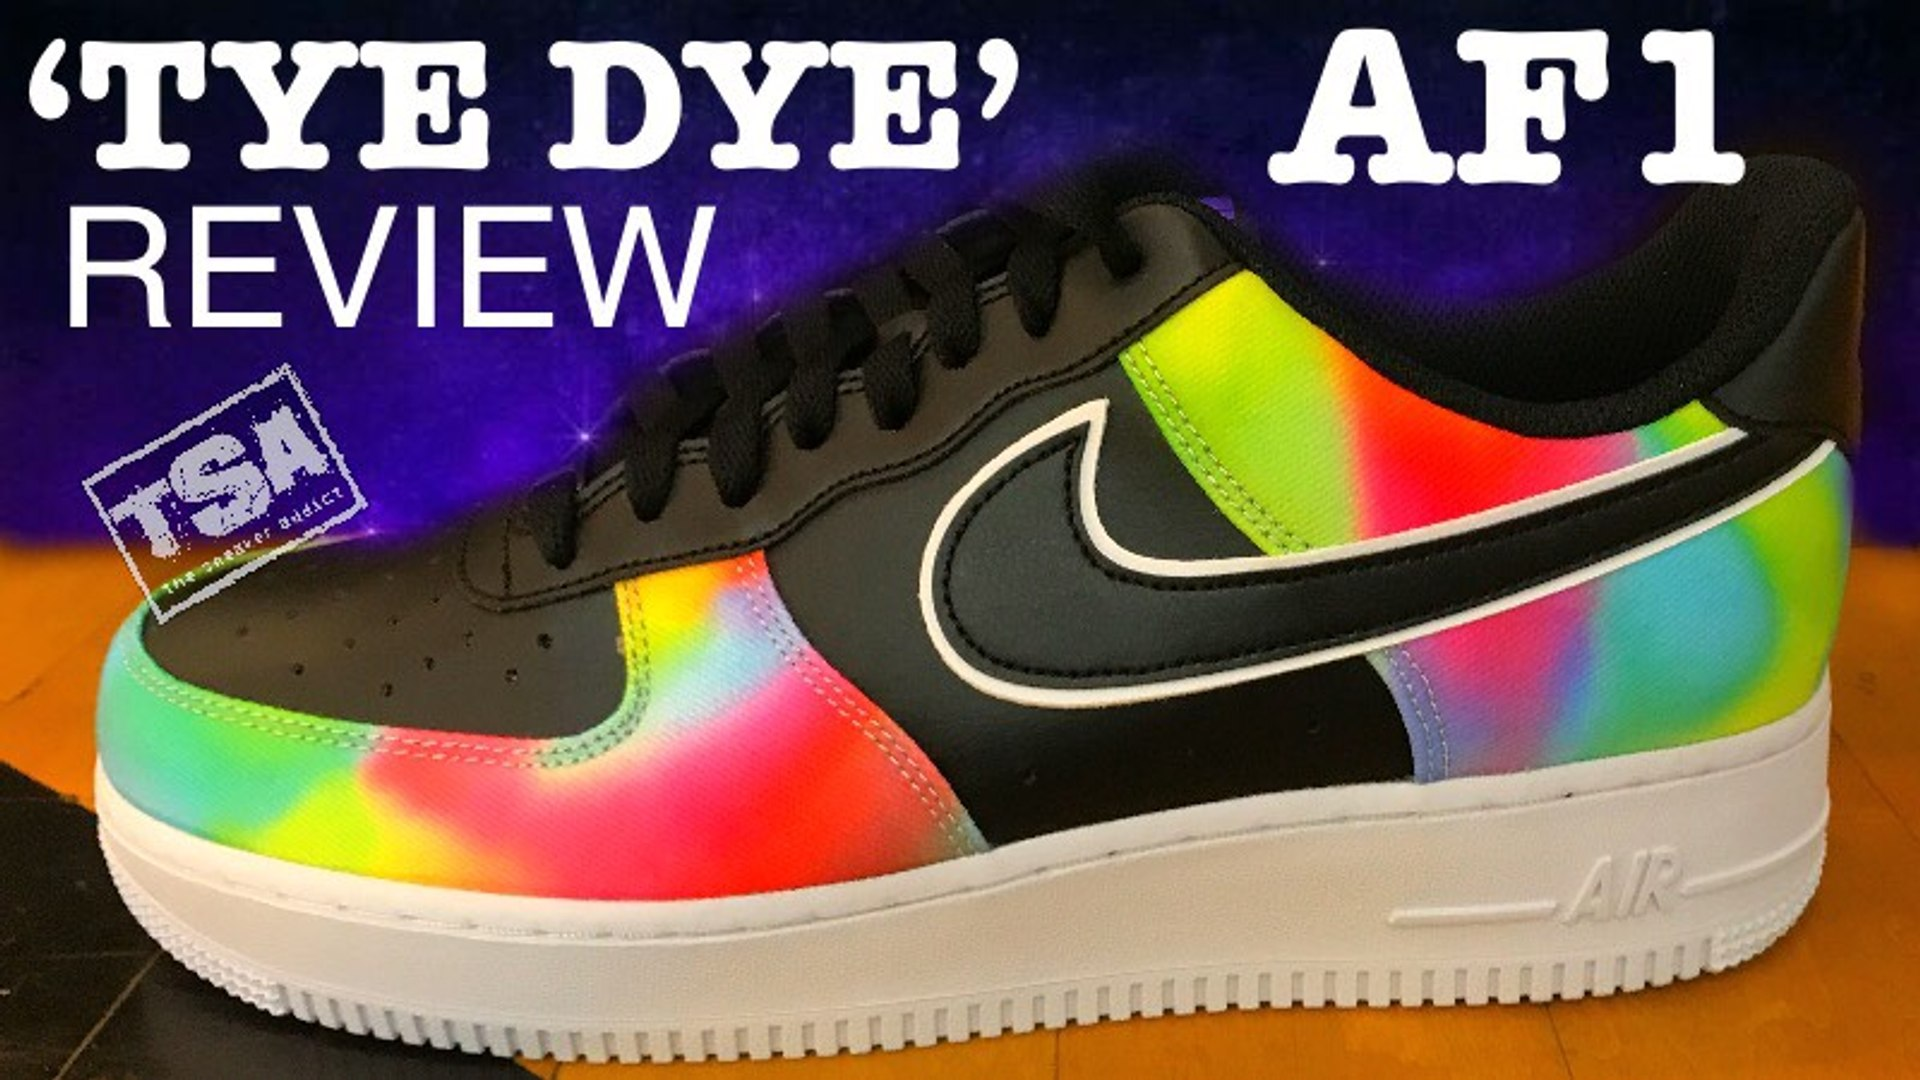 Nike Air Force 1 Low Black Tie Dye CK0840 001 Sneaker Detailed Review